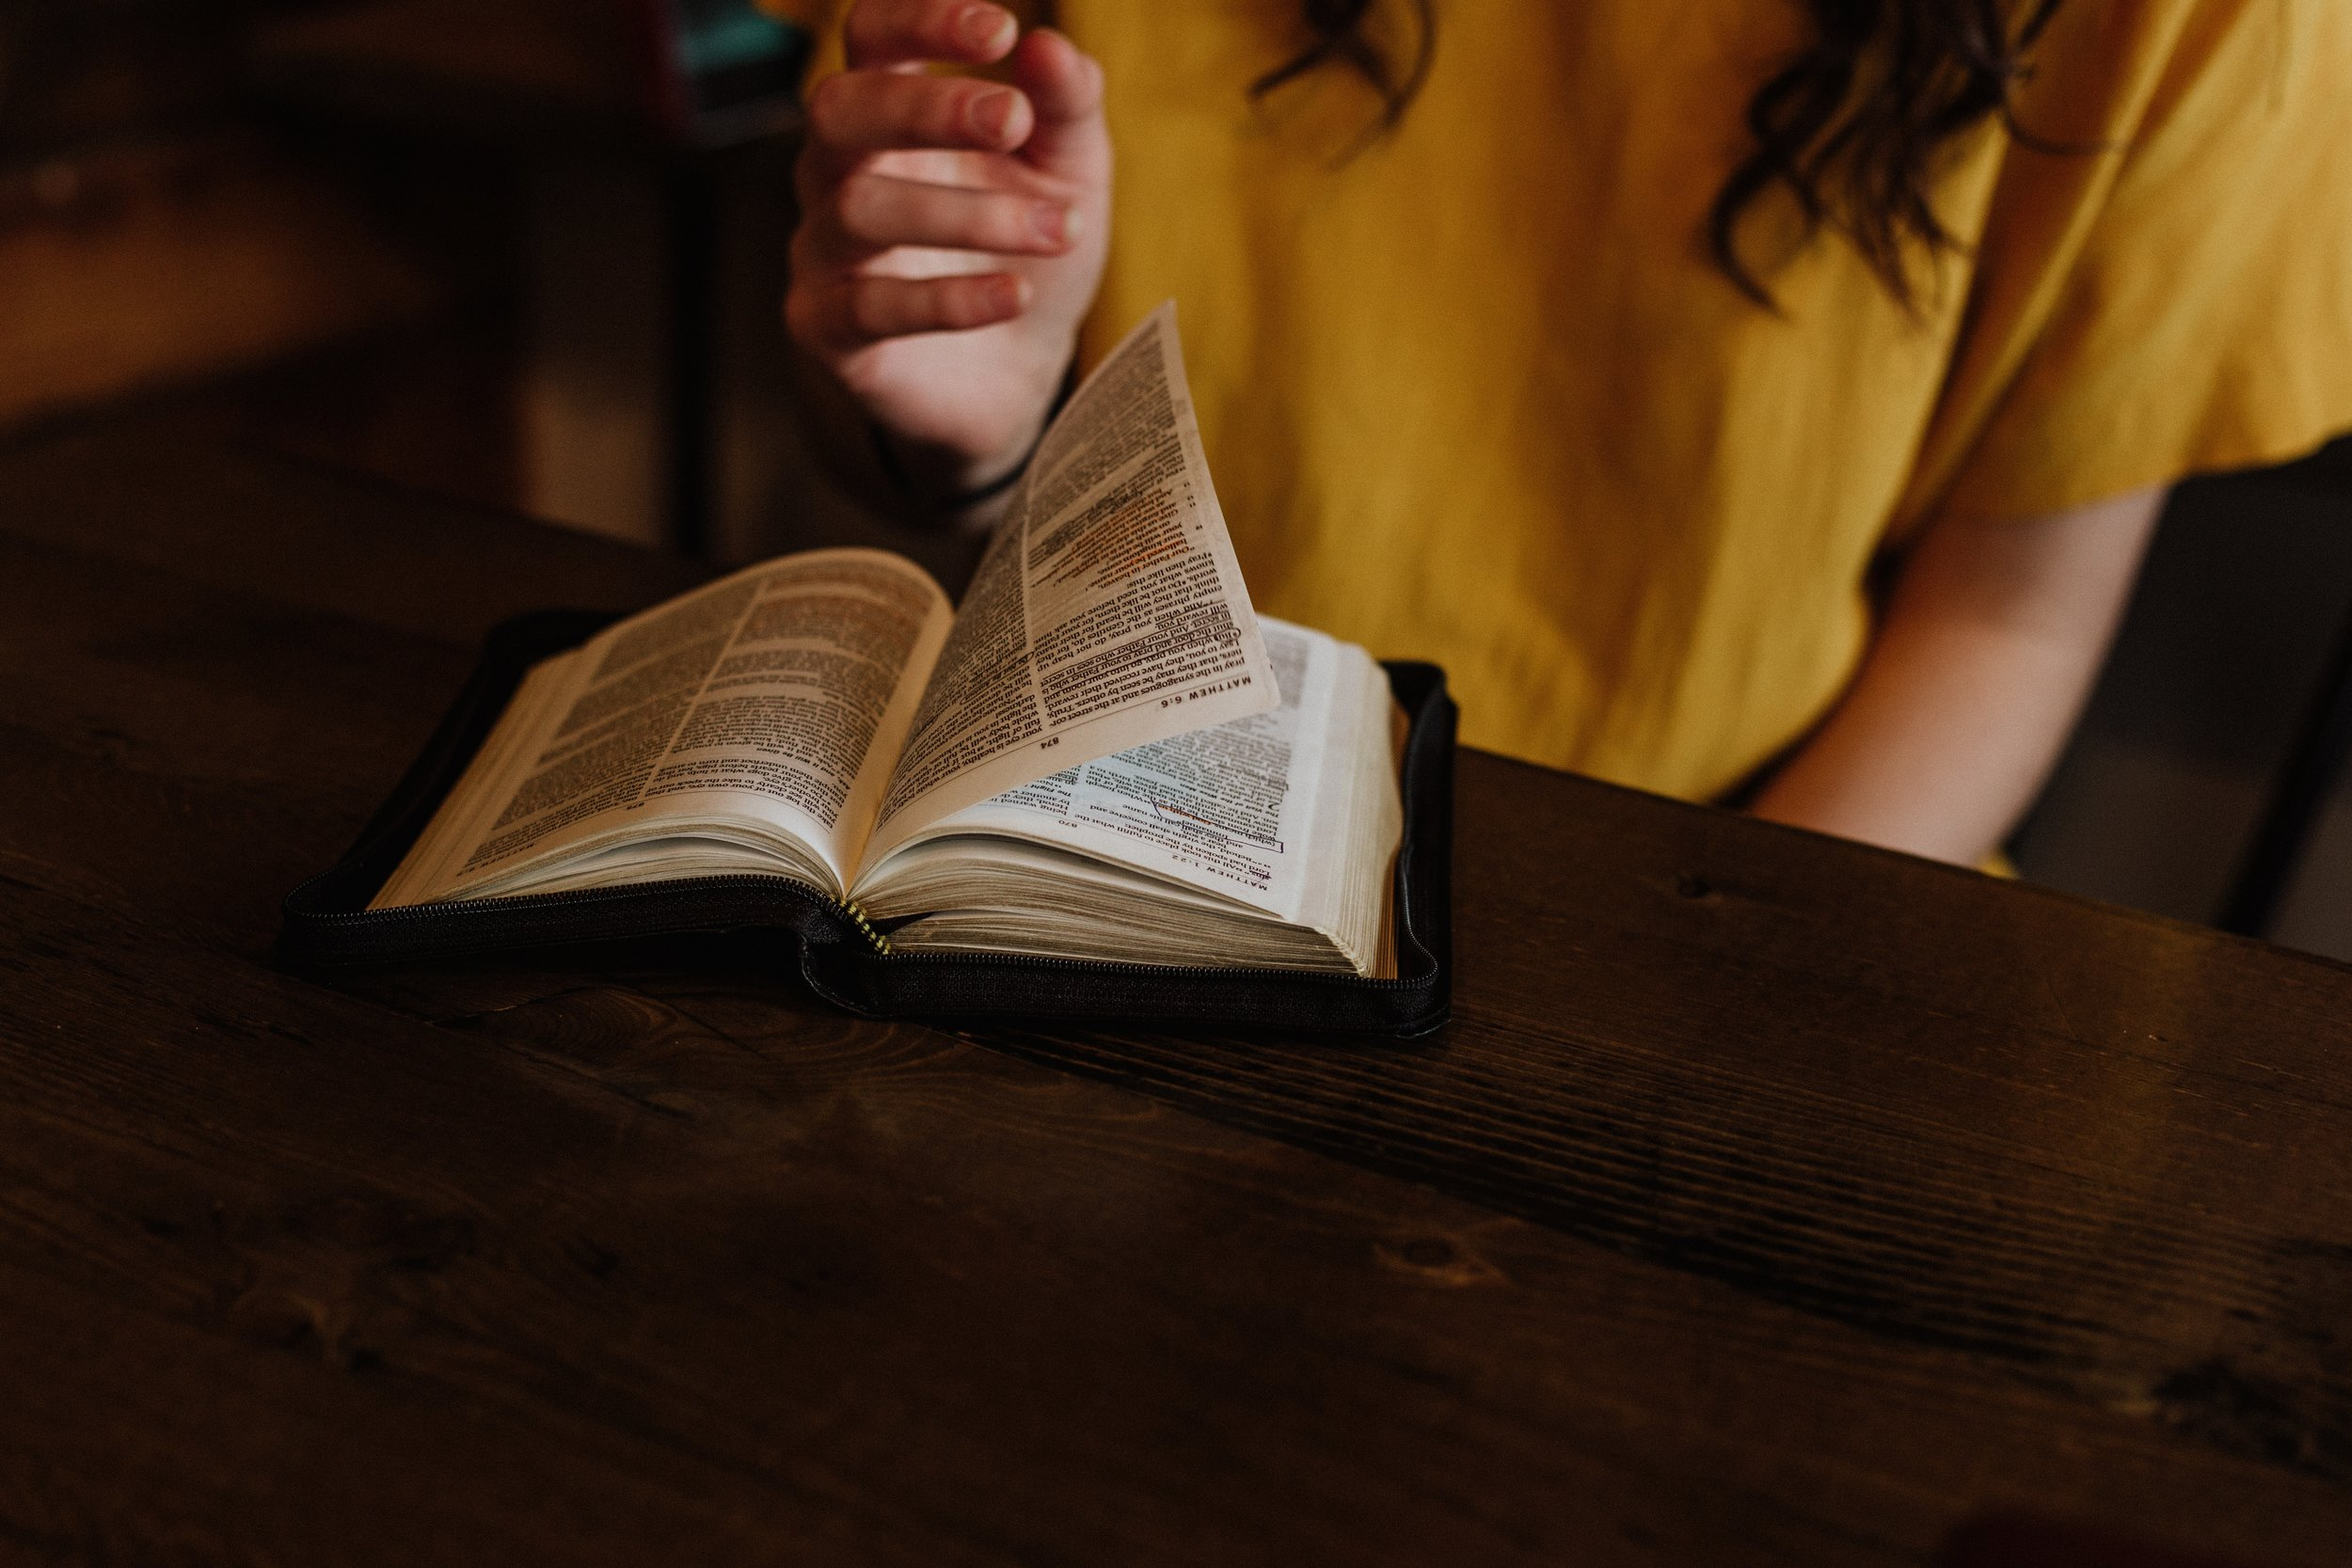 The Bible   The bible is the Holy inspired word of God.